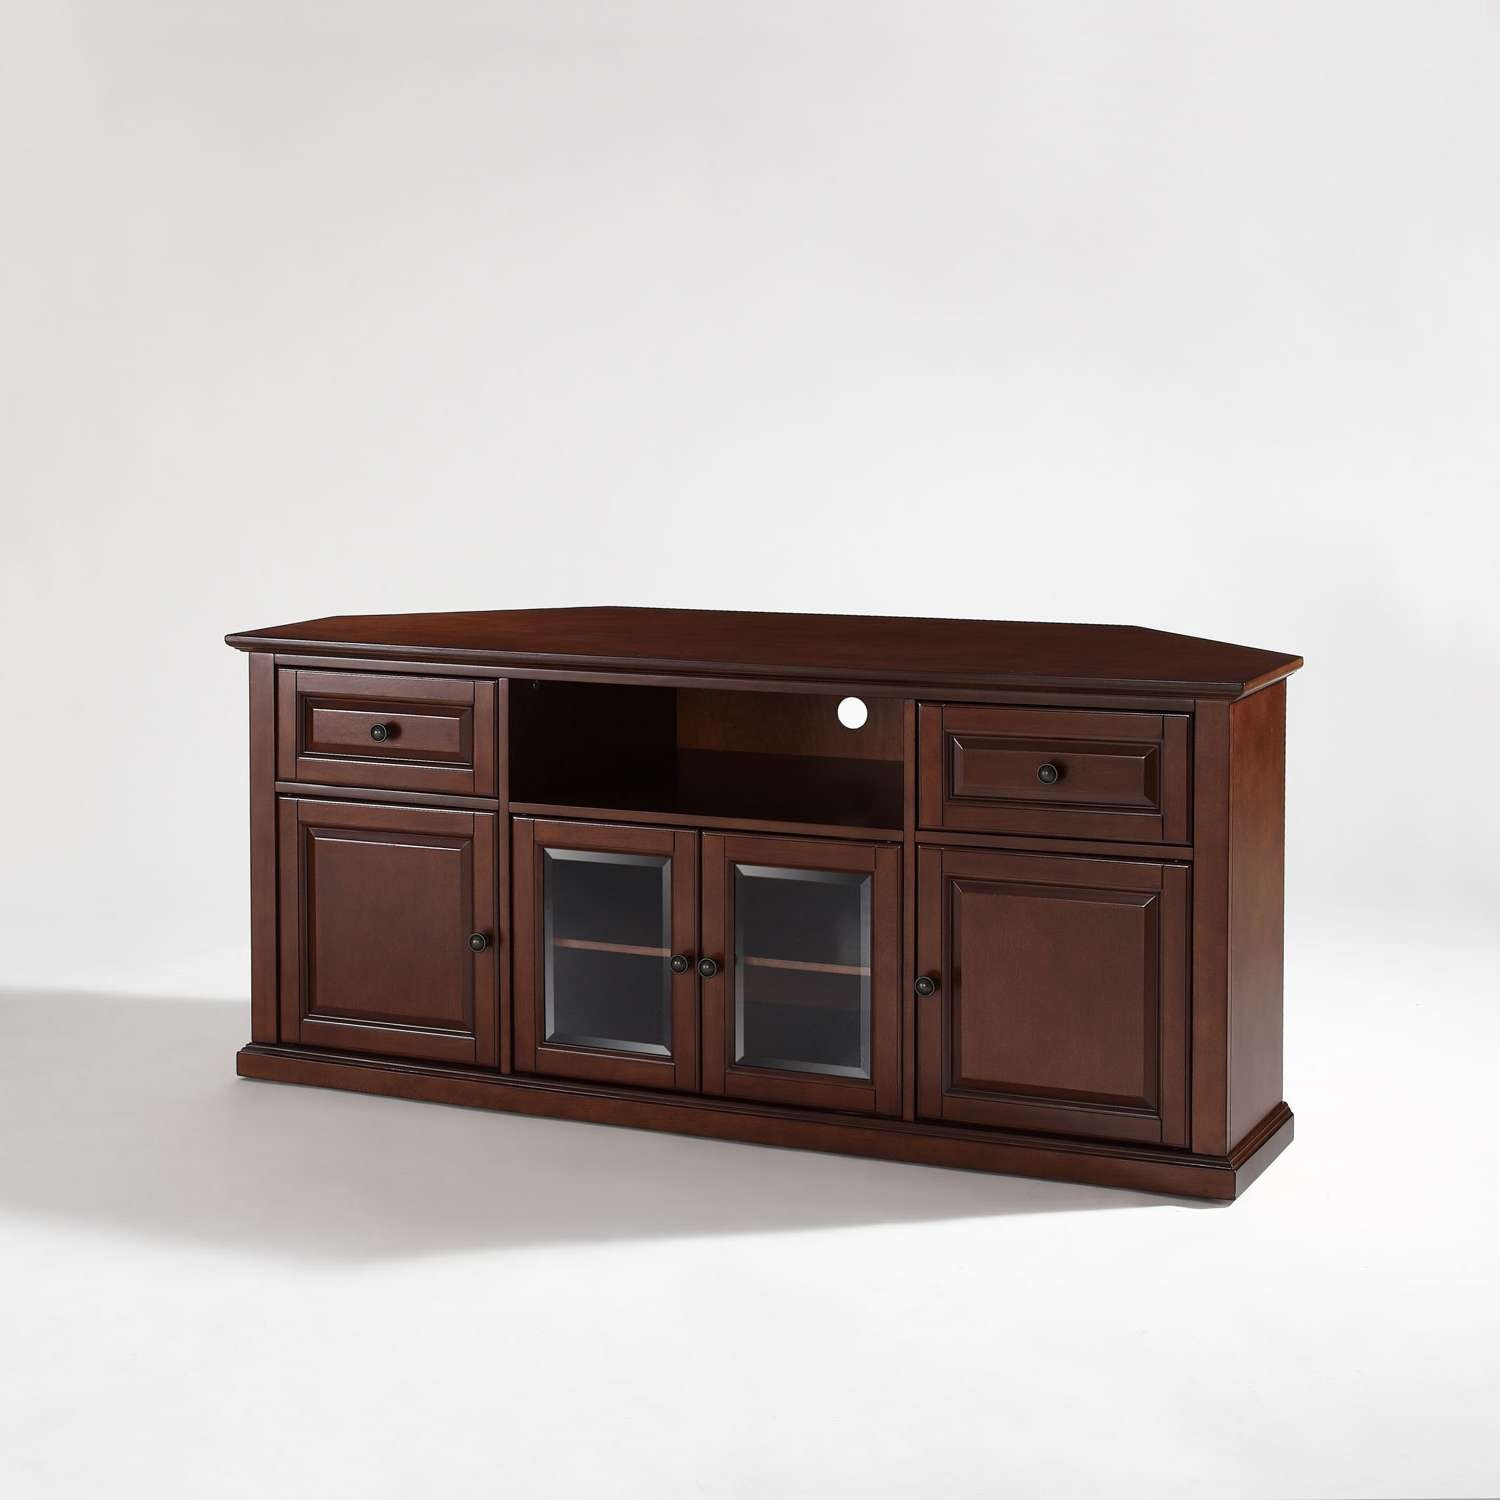 Tv Stands & Cabinets On Sale | Bellacor For 24 Inch Wide Tv Stands (View 9 of 15)